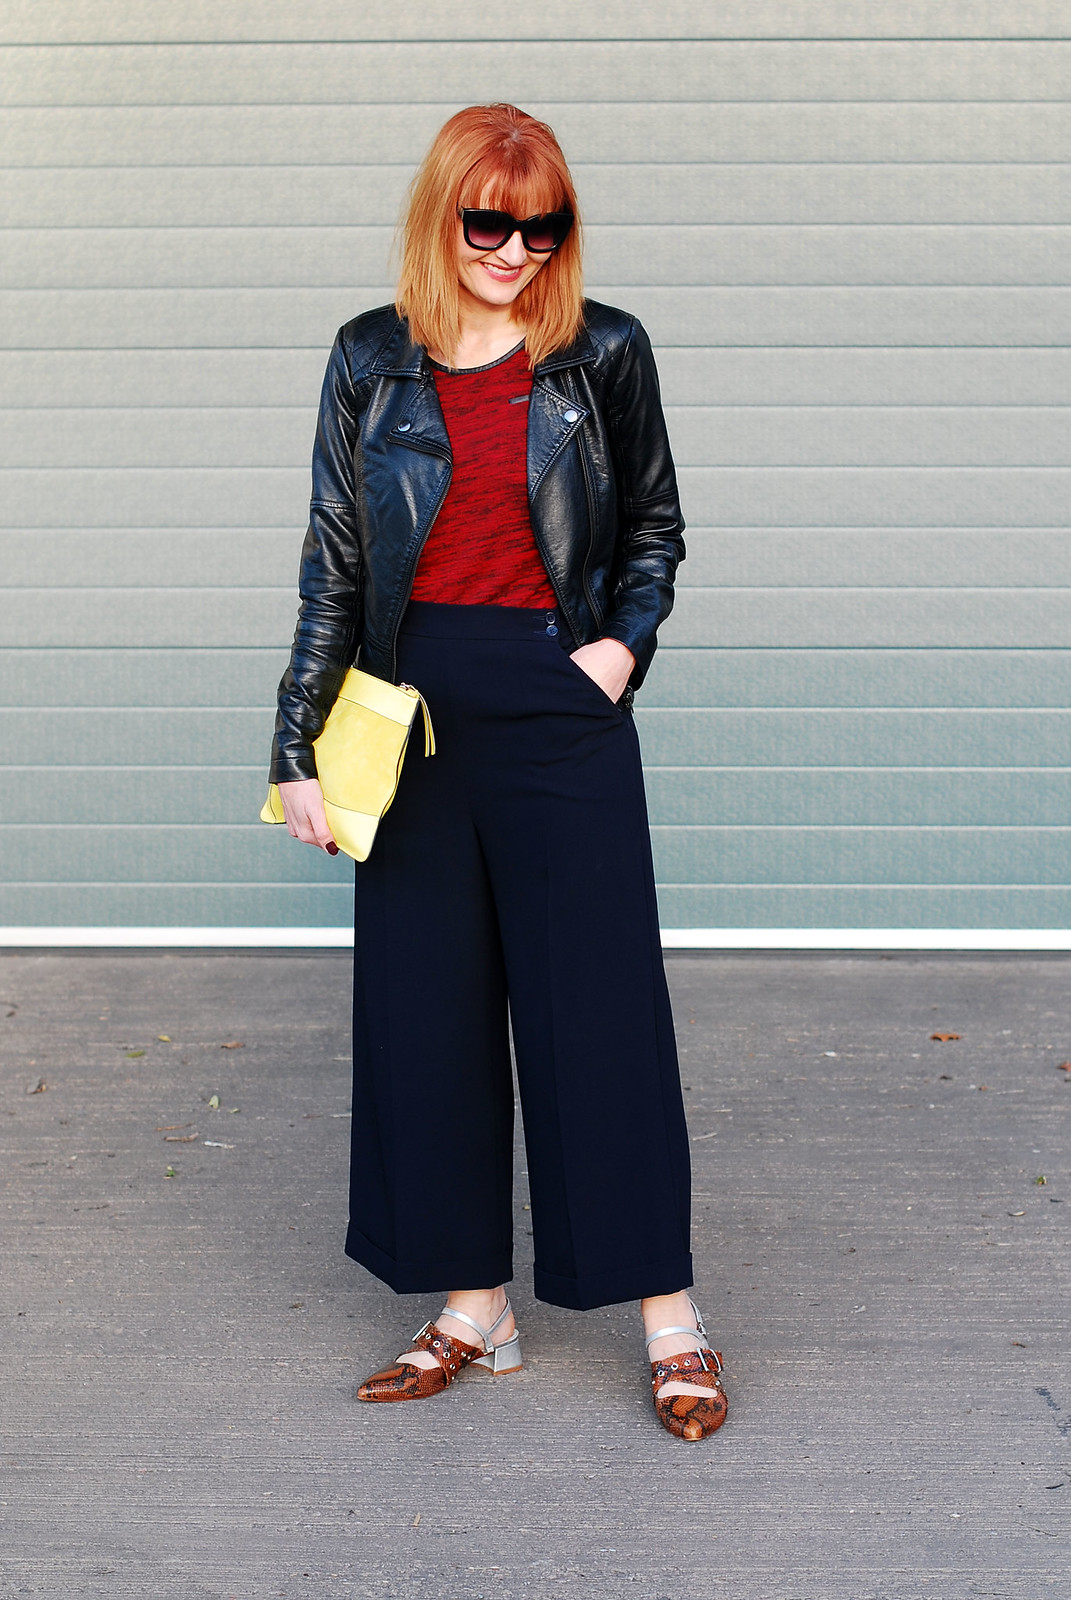 Corporate rock chic look: Black biker jacket \ red textured t-shirt \ navy culottes \ Finery pointed strappy snakeskin buckle shoes \ neon yellow suede clutch | Not Dressed As Lamb, over 40 style